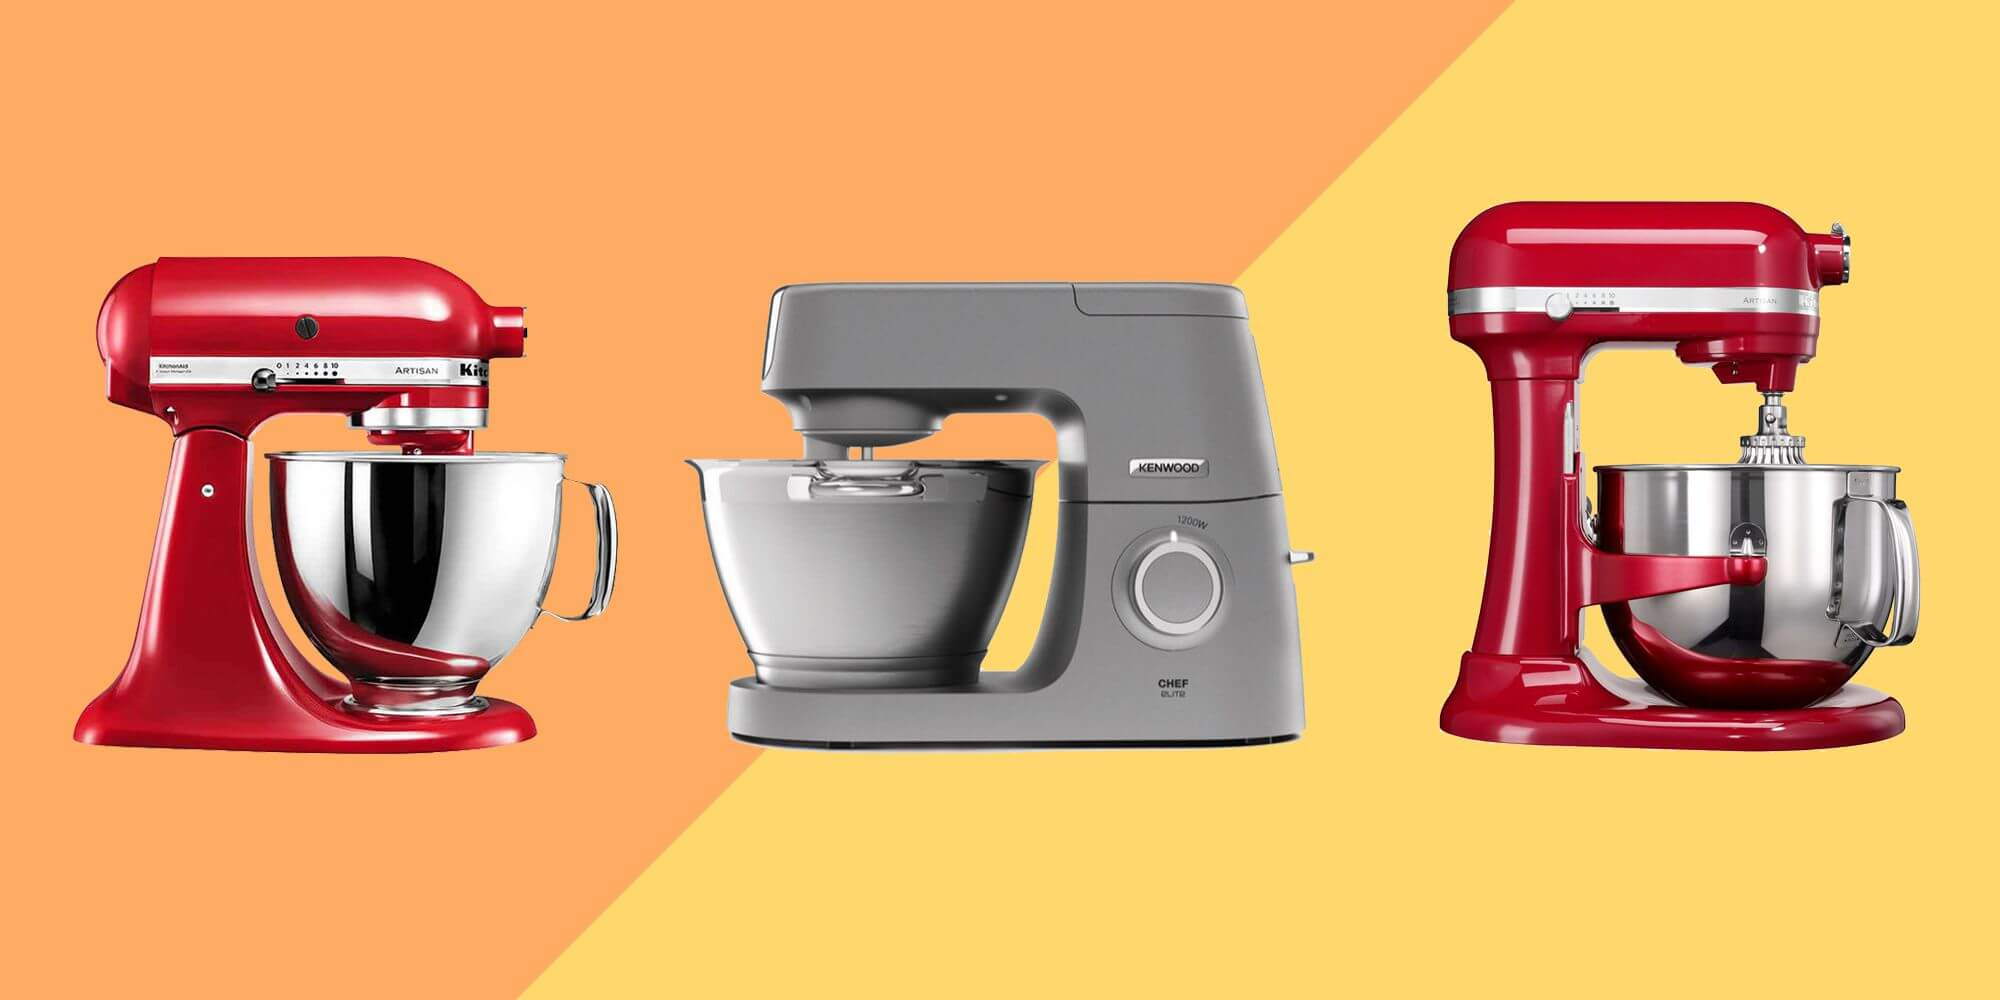 Comparatif Robot Patissier Kenwood Et Kitchenaid Comparatif Kitchenaid Artisan Vs Kenwood Chef Titanium Les Délices